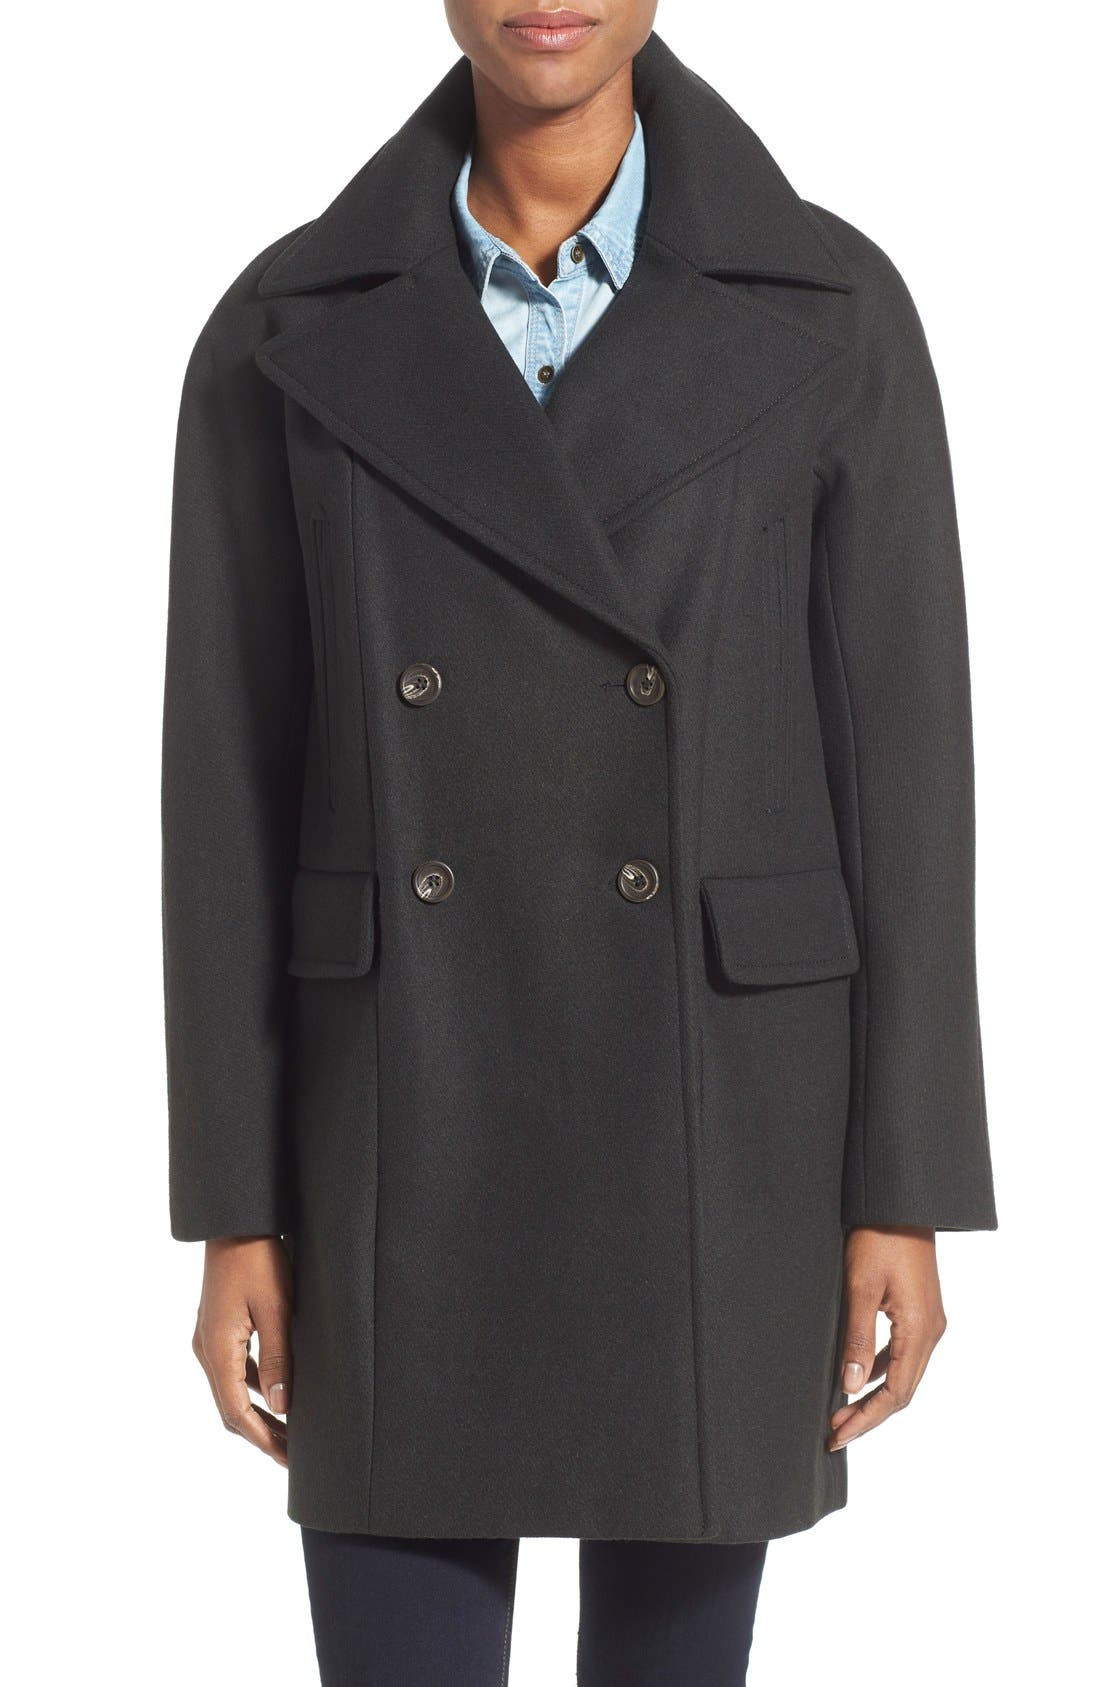 Main Image - Vince CamutoDouble Breasted Peacoat